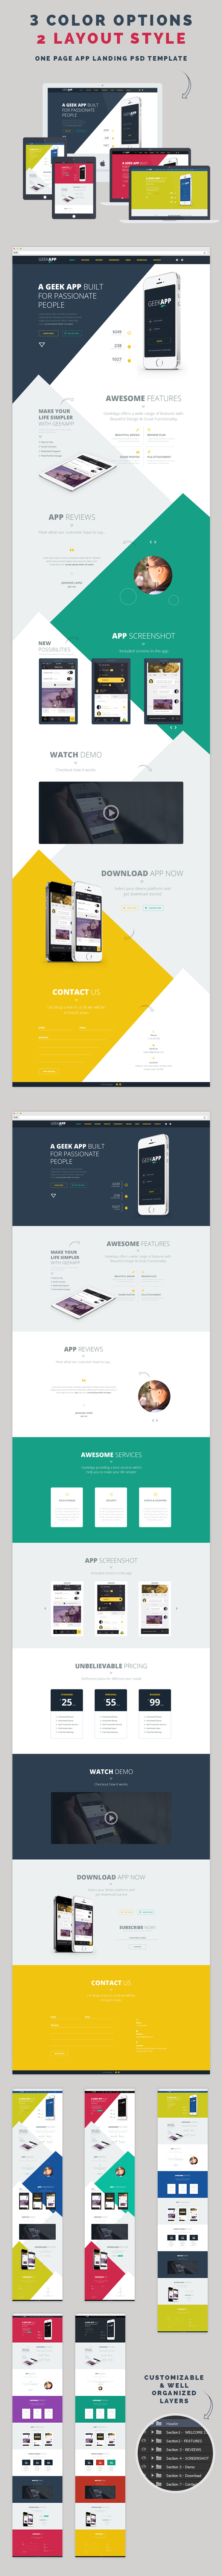 Erfreut Responsive Website Vorlagen Psd Fotos - Entry Level Resume ...